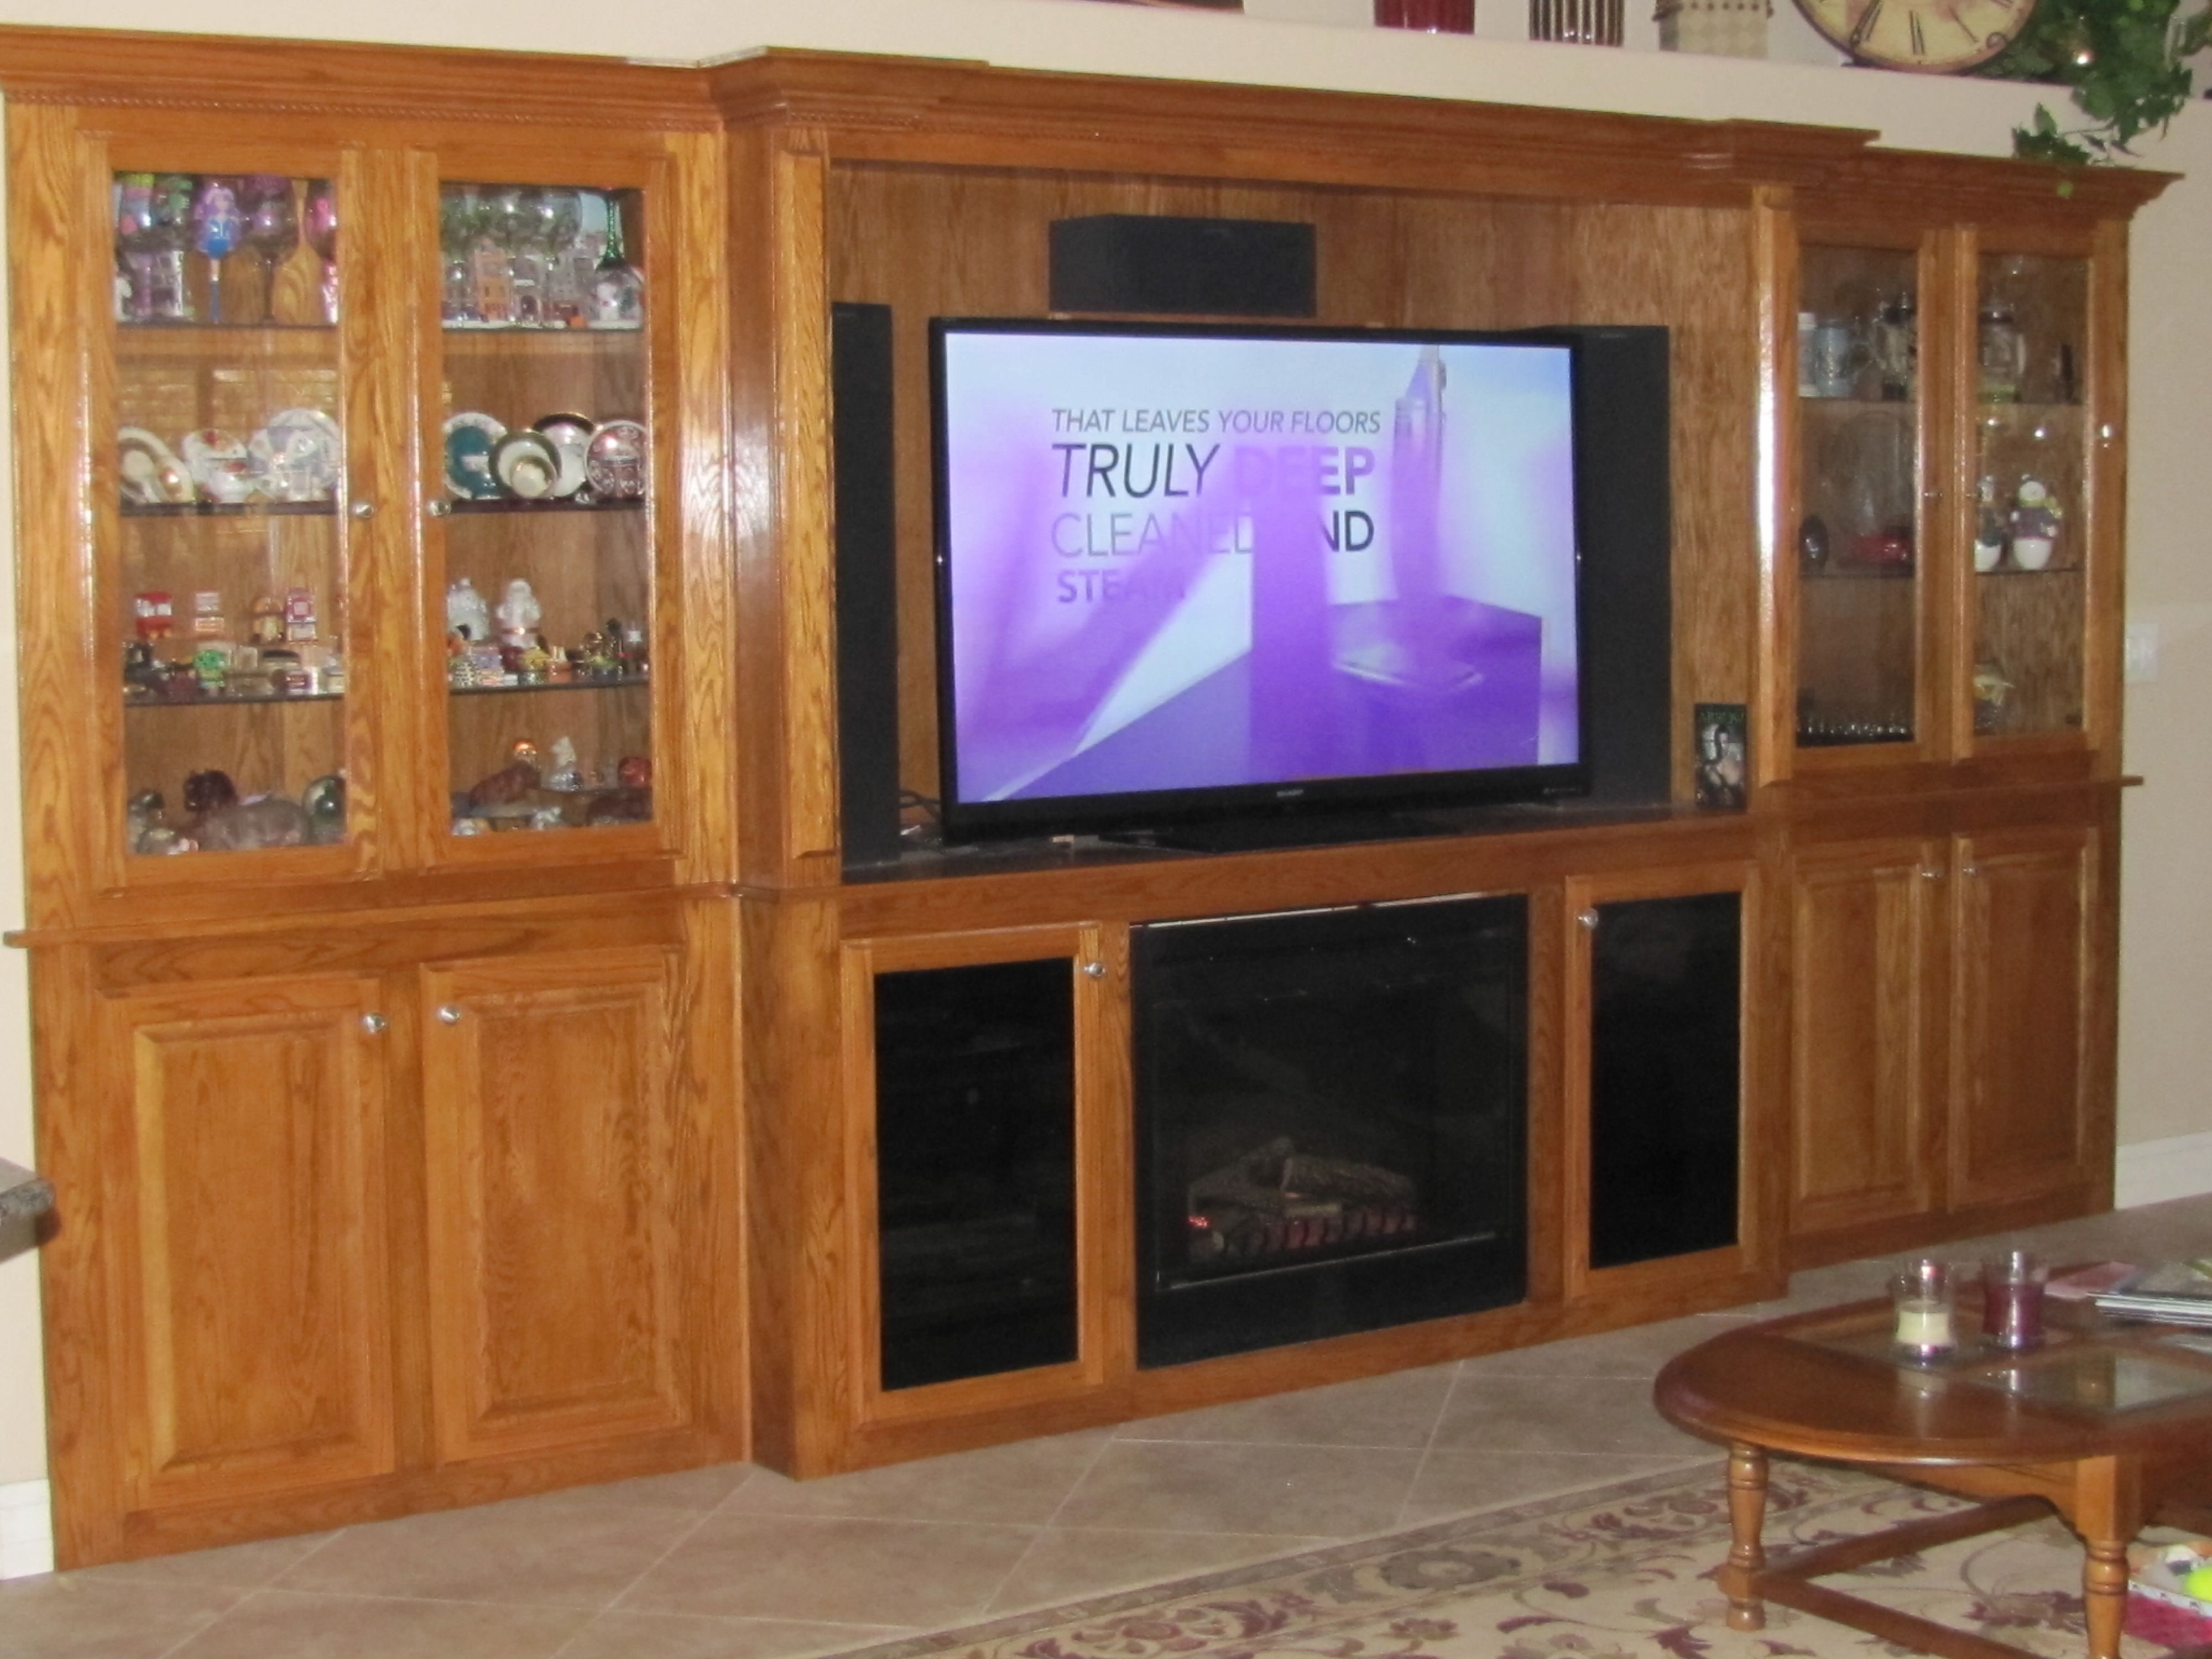 My Husband Designed And Built This Oak Entertainment Center In A Hole In The Wall It Houses A